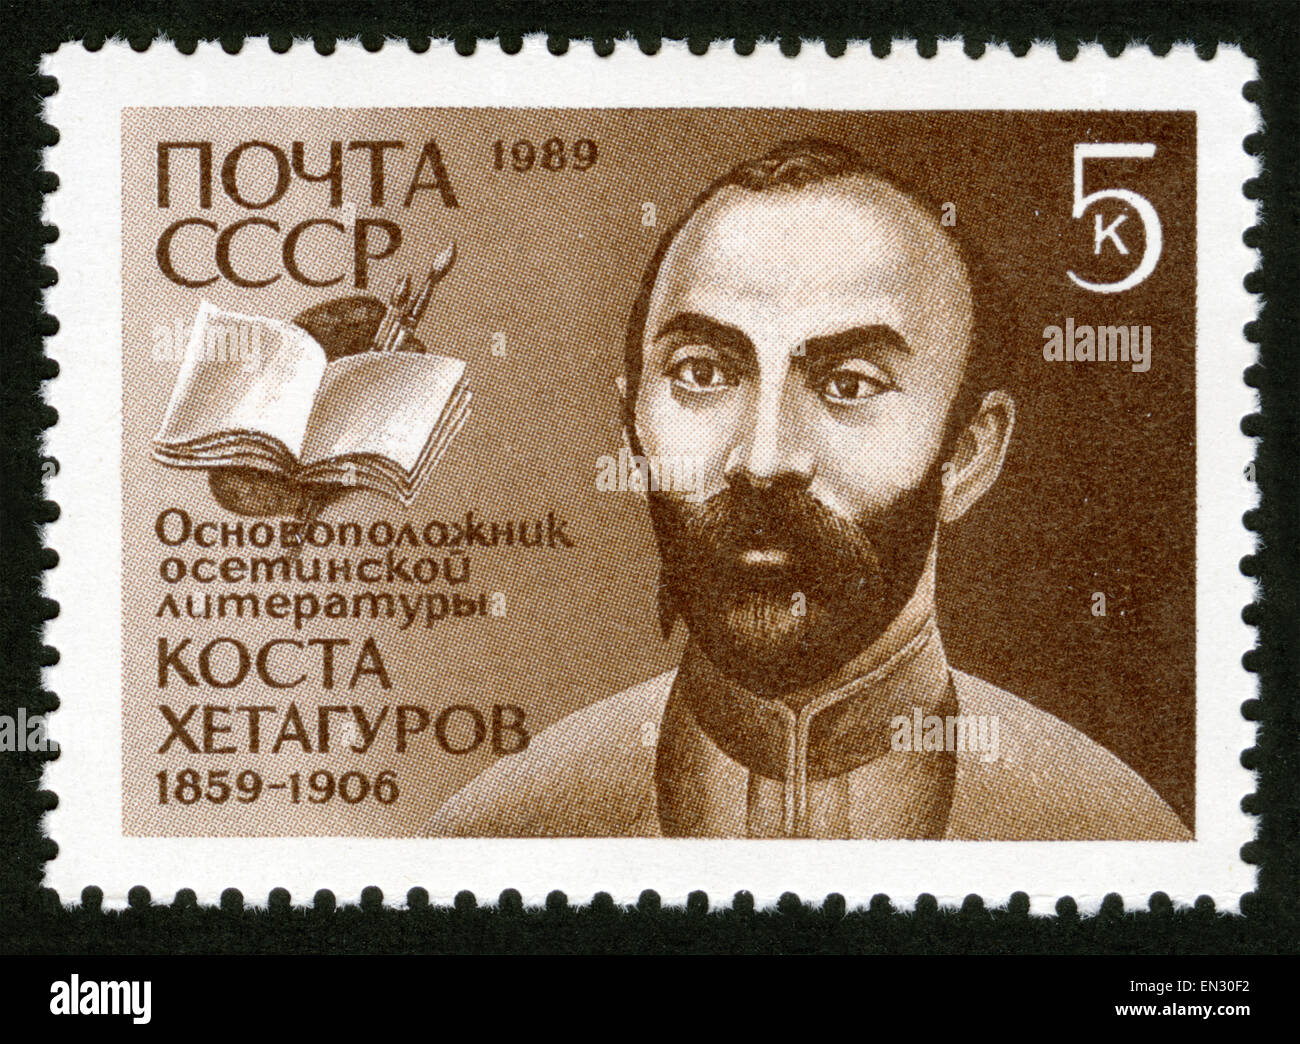 USSR,1988 year,post mark,stamp, art, portrait ,founder of the Ossetian literature Costa Hetagurov - Stock Image